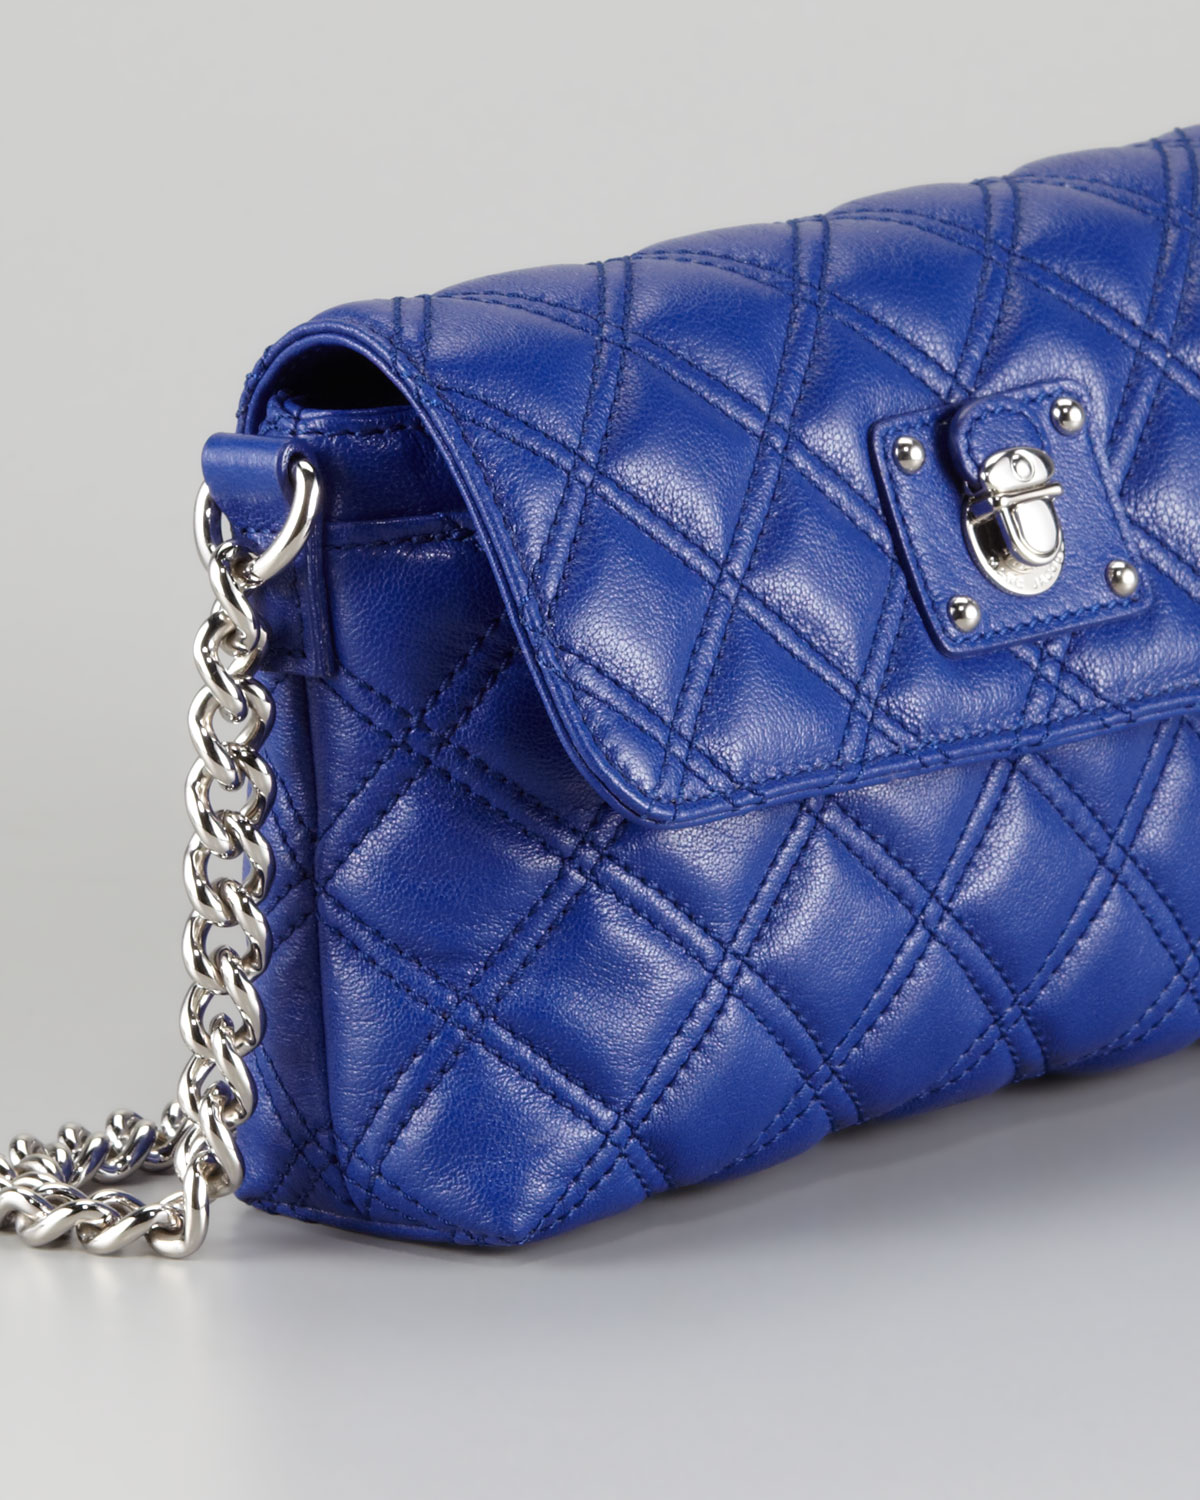 66408c6f5a4 Marc Jacobs Single Quilted Large Crossbody Bag Blue in Blue - Lyst